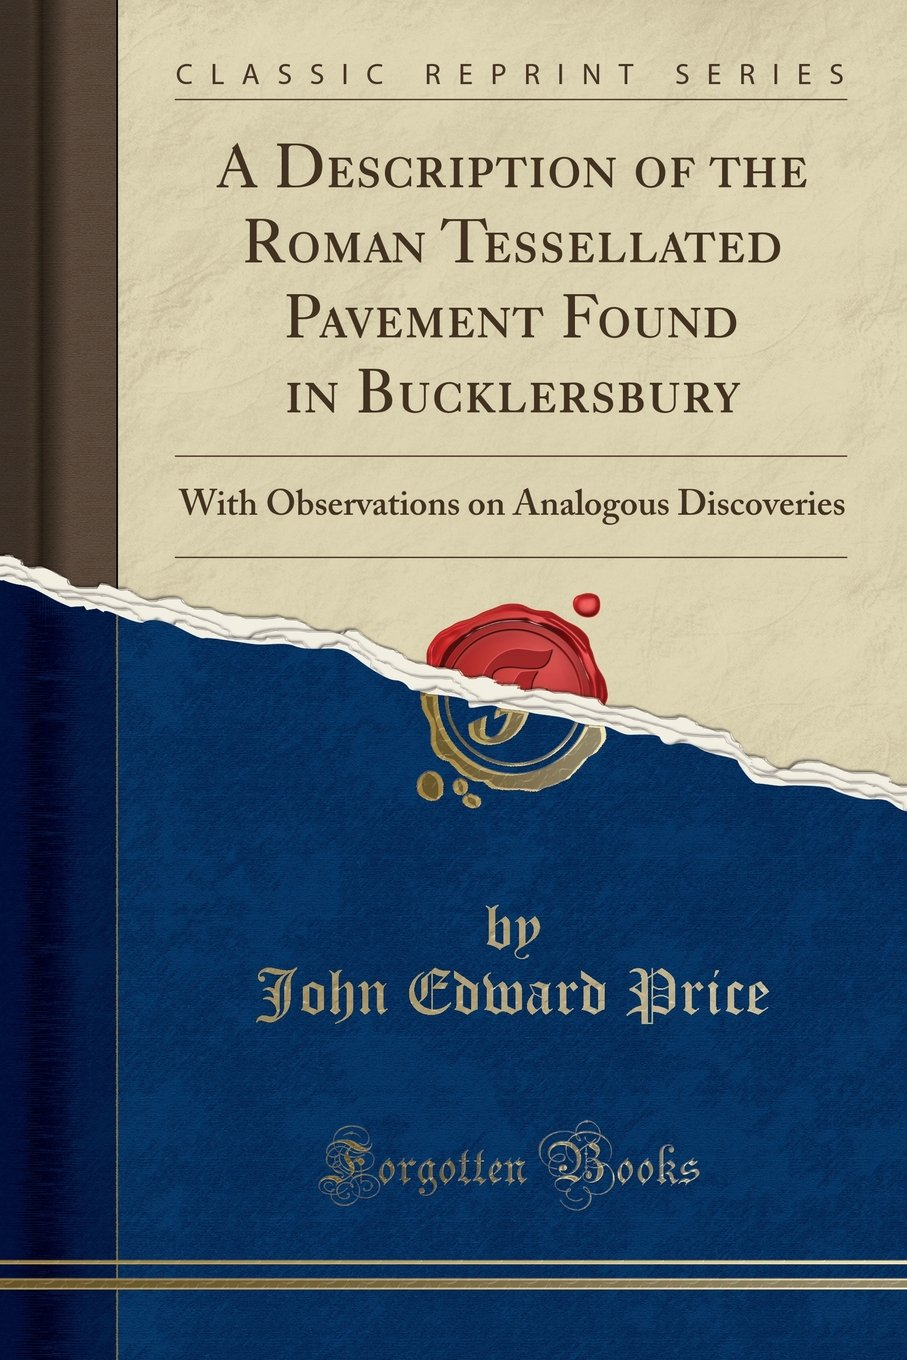 A Description of the Roman Tessellated Pavement Found in Bucklersbury: With Observations on Analogous Discoveries (Classic Reprint) ebook